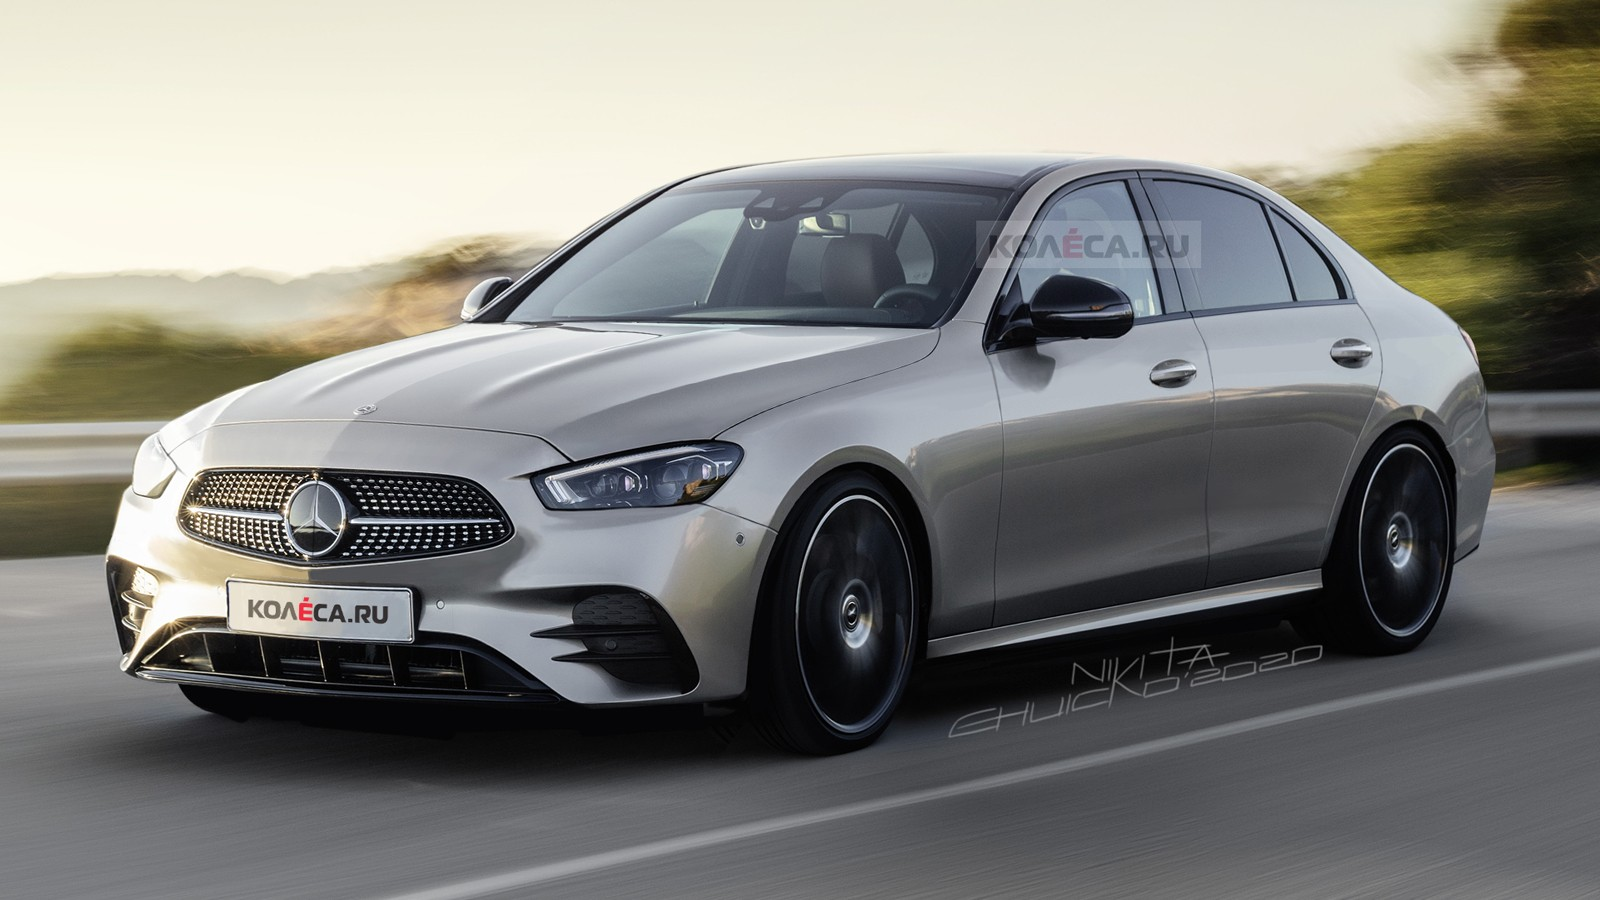 5 Mercedes-Benz C-Class Rendering Shows the AMG Line Look